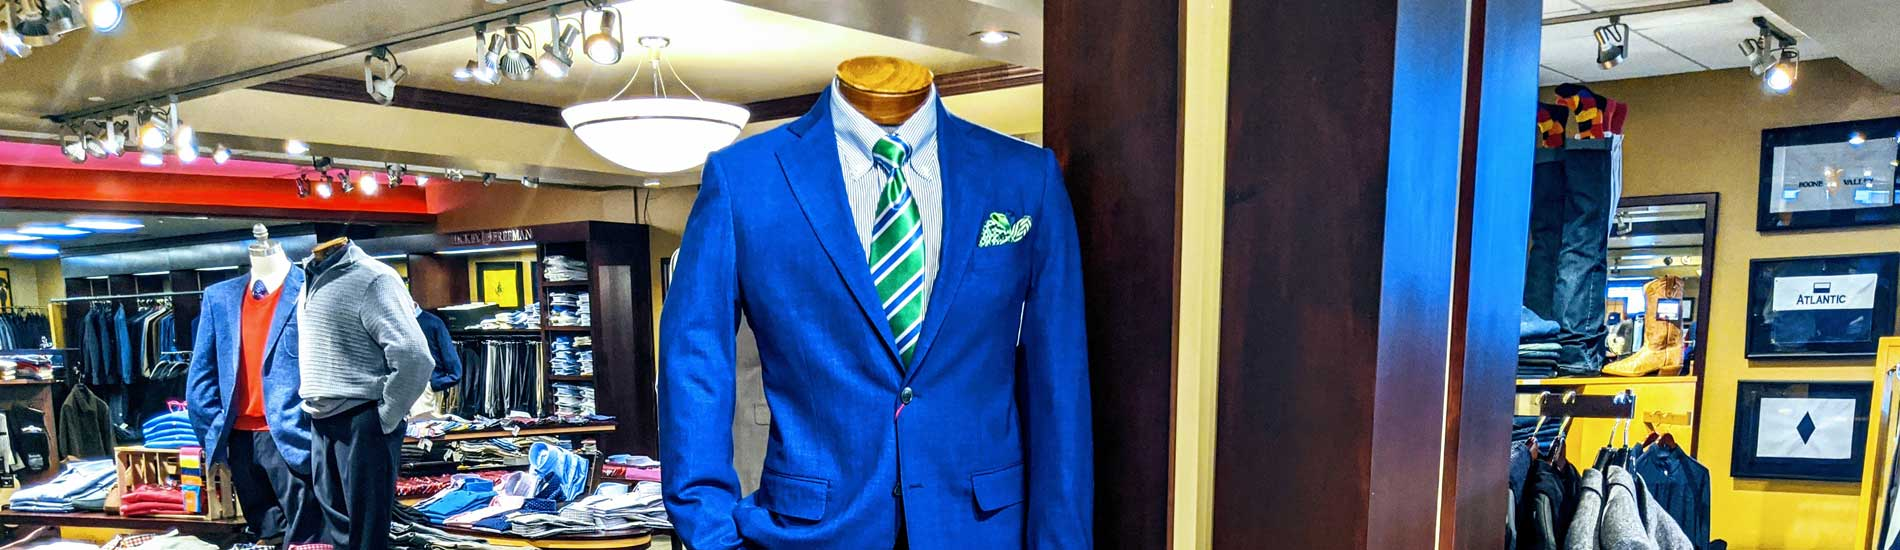 Blue mens suit